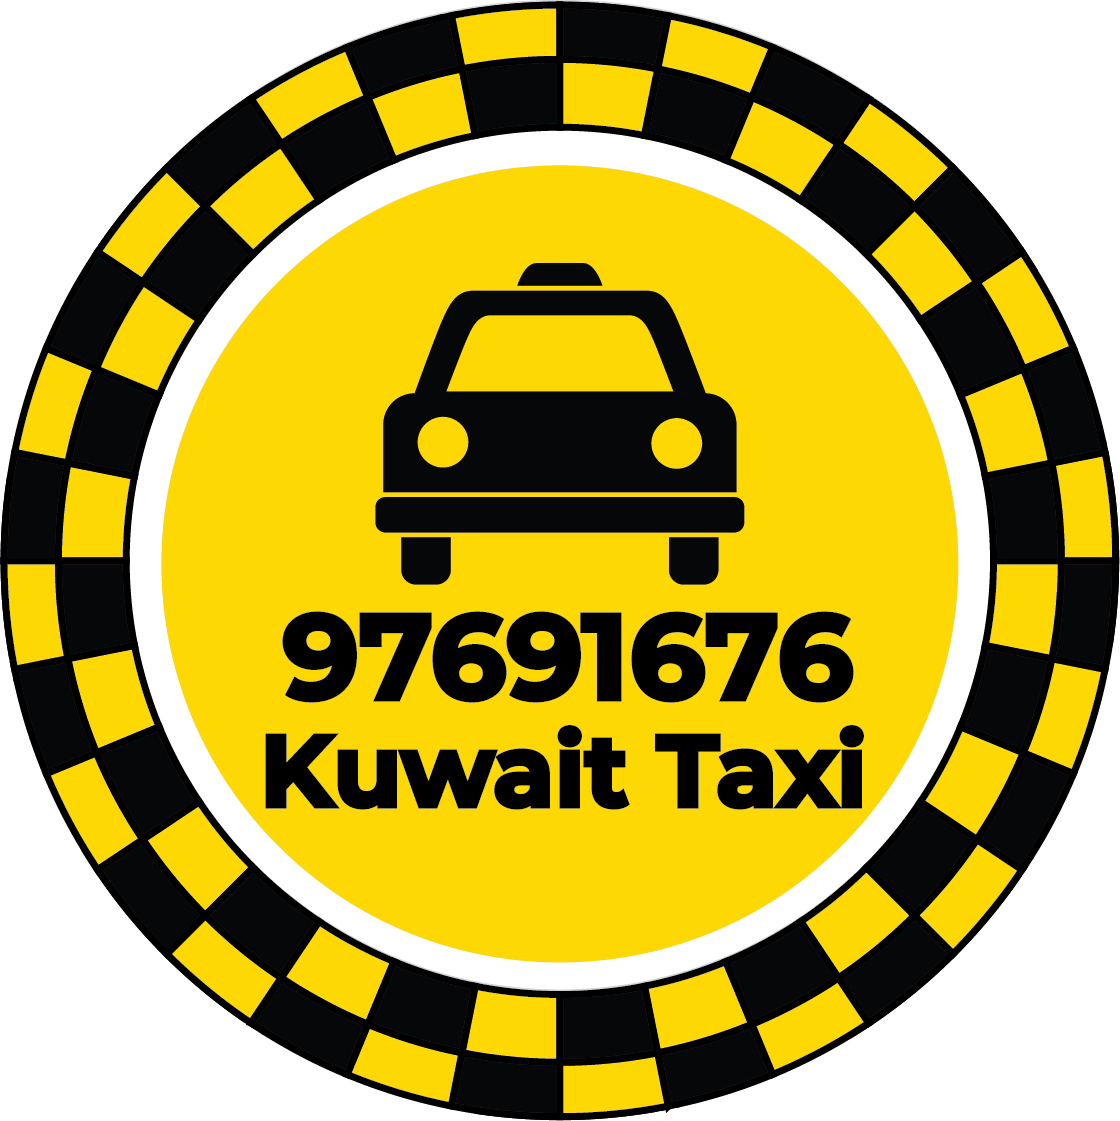 Taxi Services in kuwait